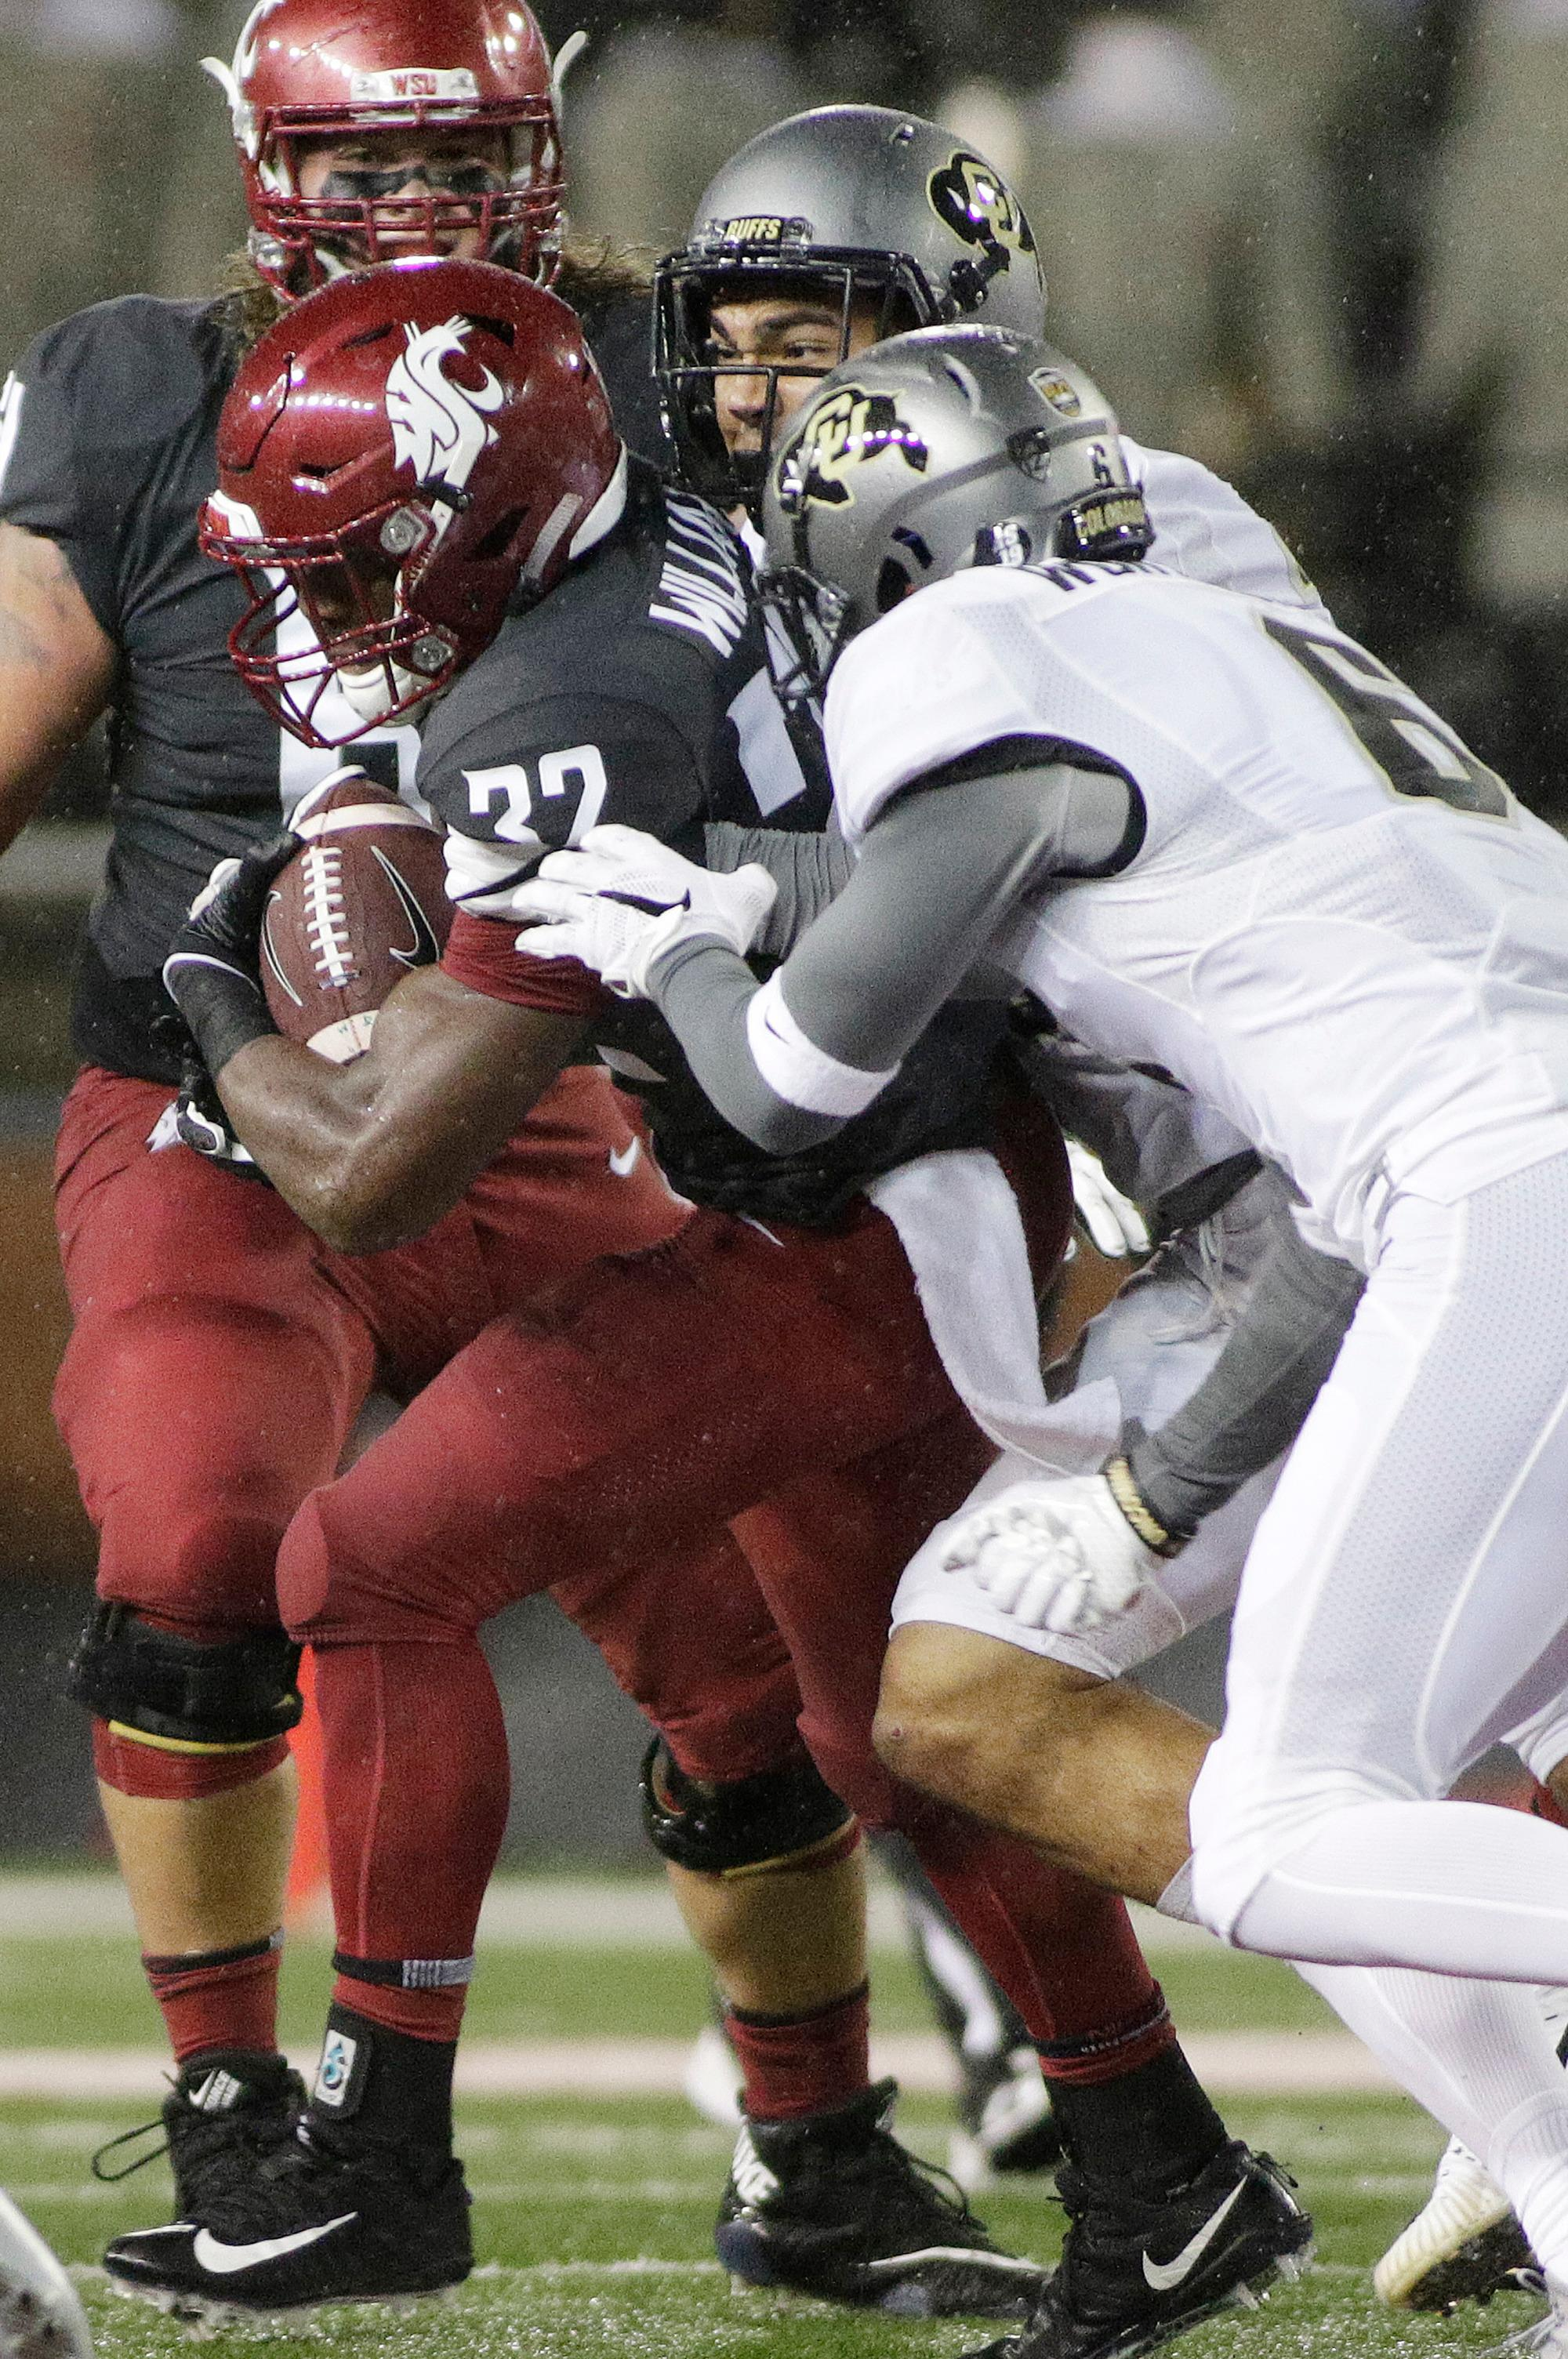 Colorado defensive back Evan Worthington, right, and linebacker Drew Lewis, center, tackle Washington State running back James Williams during the first half of an NCAA college football game in Pullman, Wash., Saturday, Oct. 21, 2017. (AP Photo/Young Kwak)